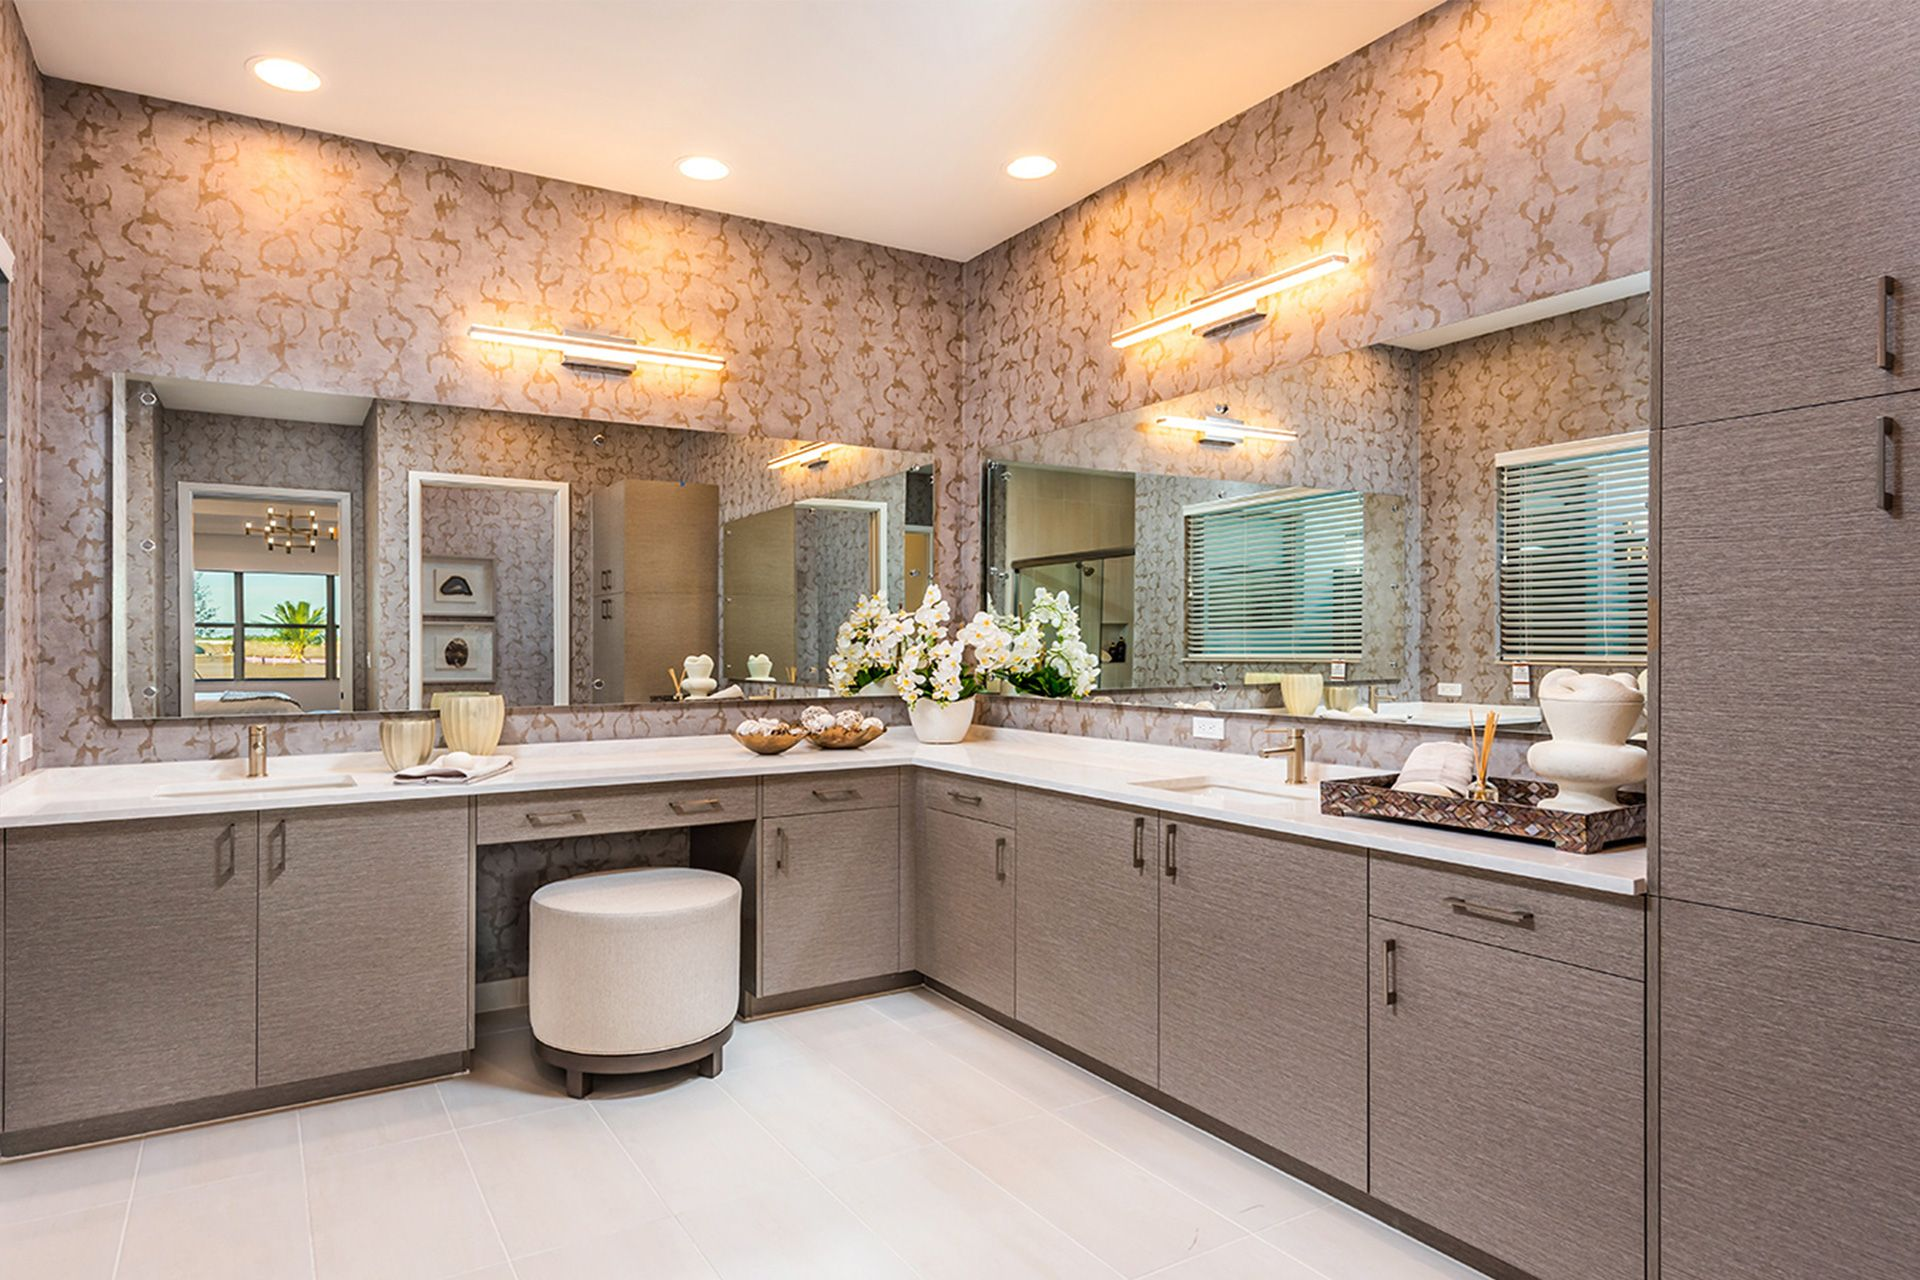 Bathroom featured in the Bora By GL Homes in Palm Beach County, FL